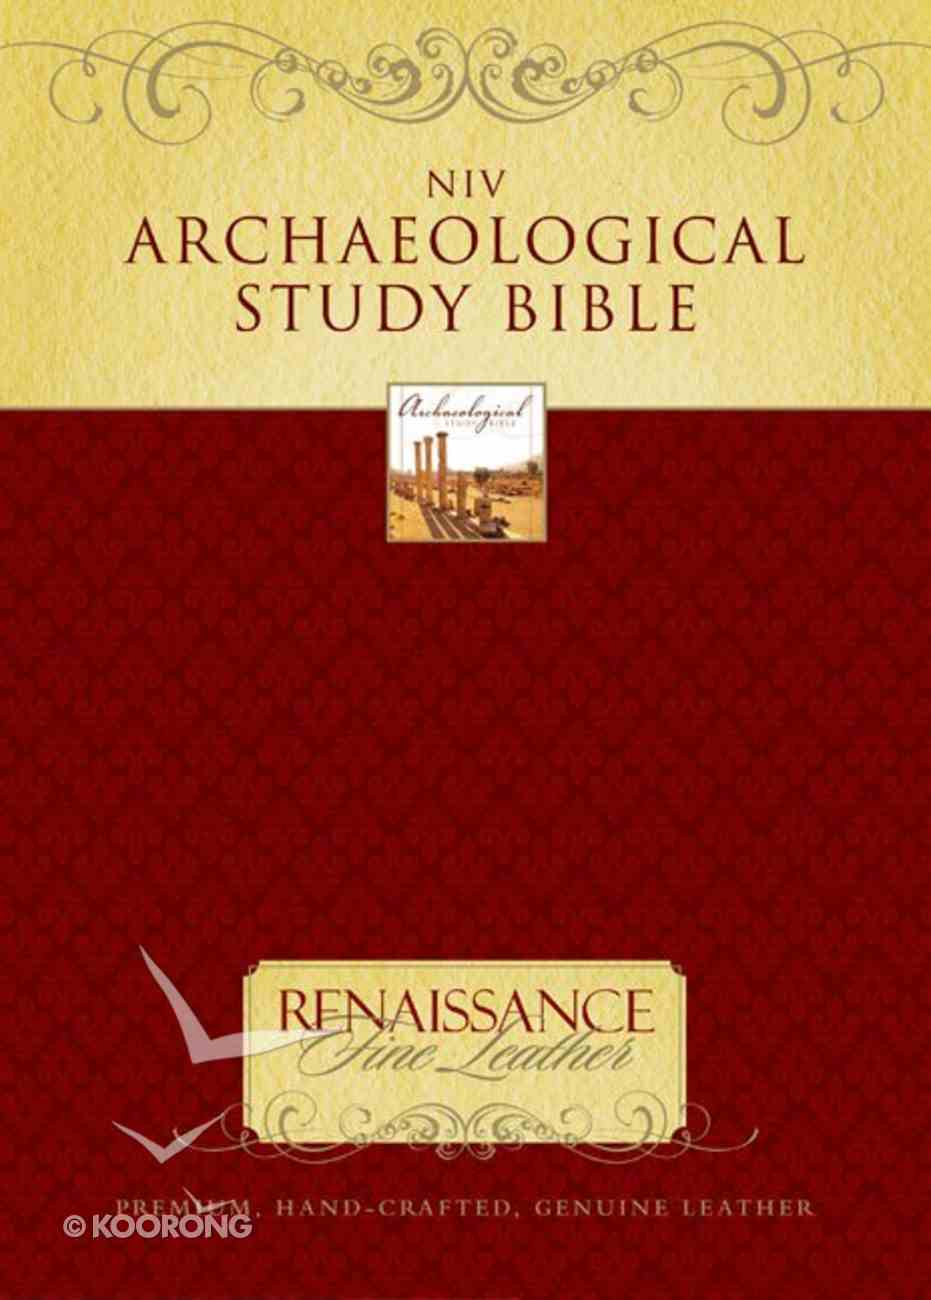 NIV Archaeological Study Bible, Brown (1984) Genuine Leather